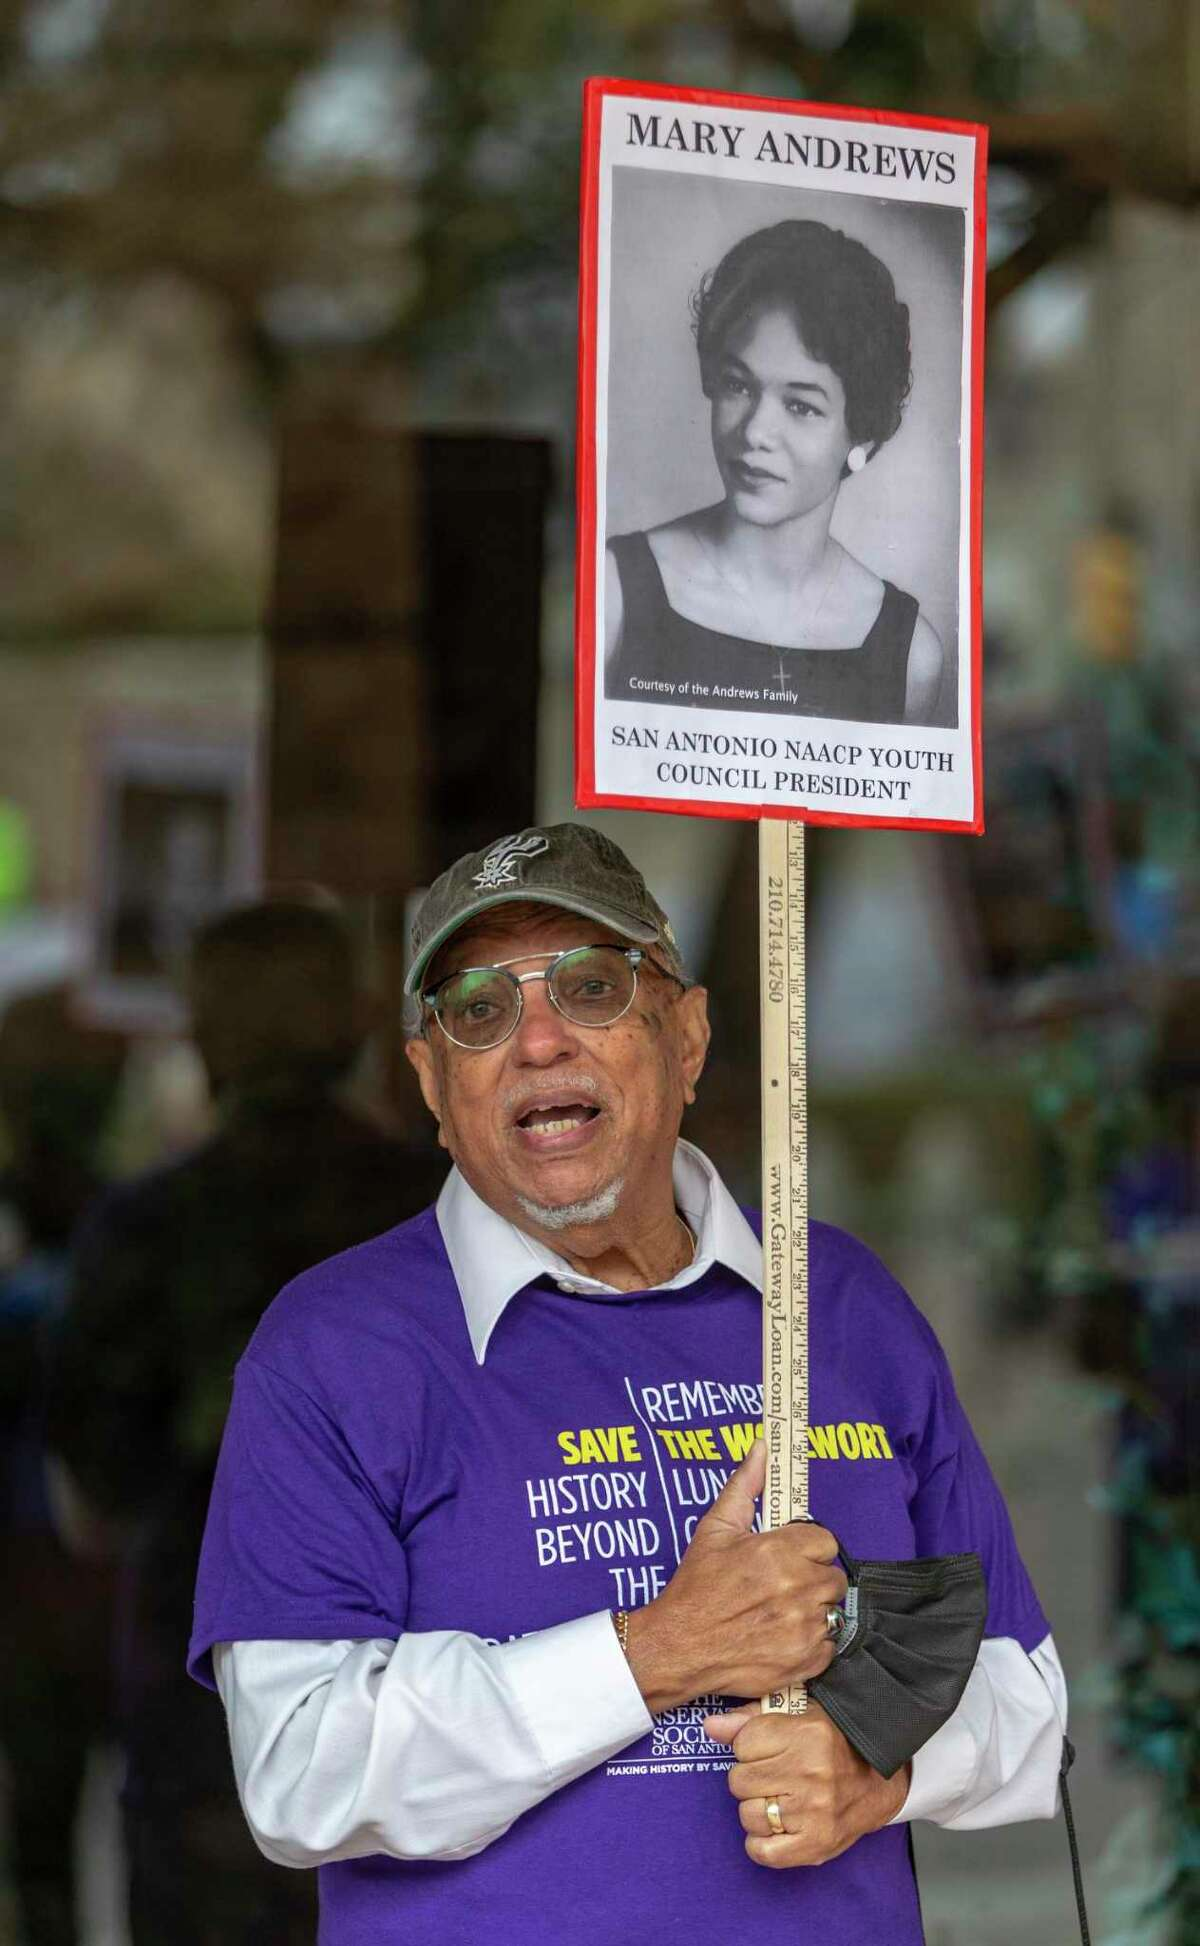 Chuck Andrews holds a picture of sister Mary Andrews outside the Woolworth Building as he talks about the peaceful integration of the Woolworth lunch counter, which his sister was a part of in 1960.